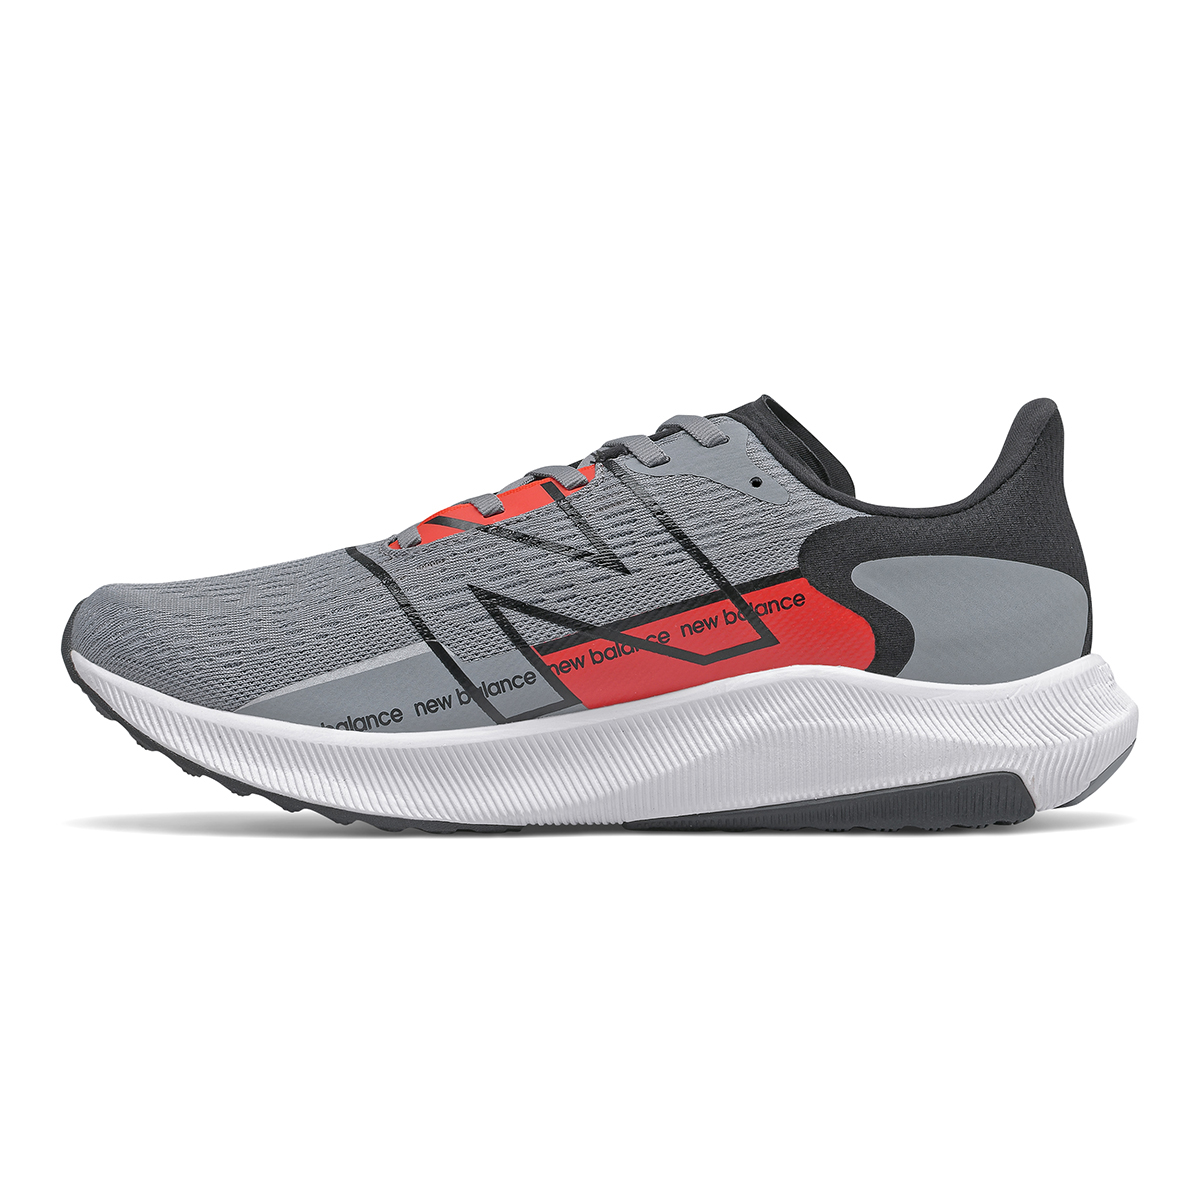 Men's New Balance Fuelcell Propel V2 Running Shoe - Color: Steel - Size: 6 - Width: Wide, Steel, large, image 2